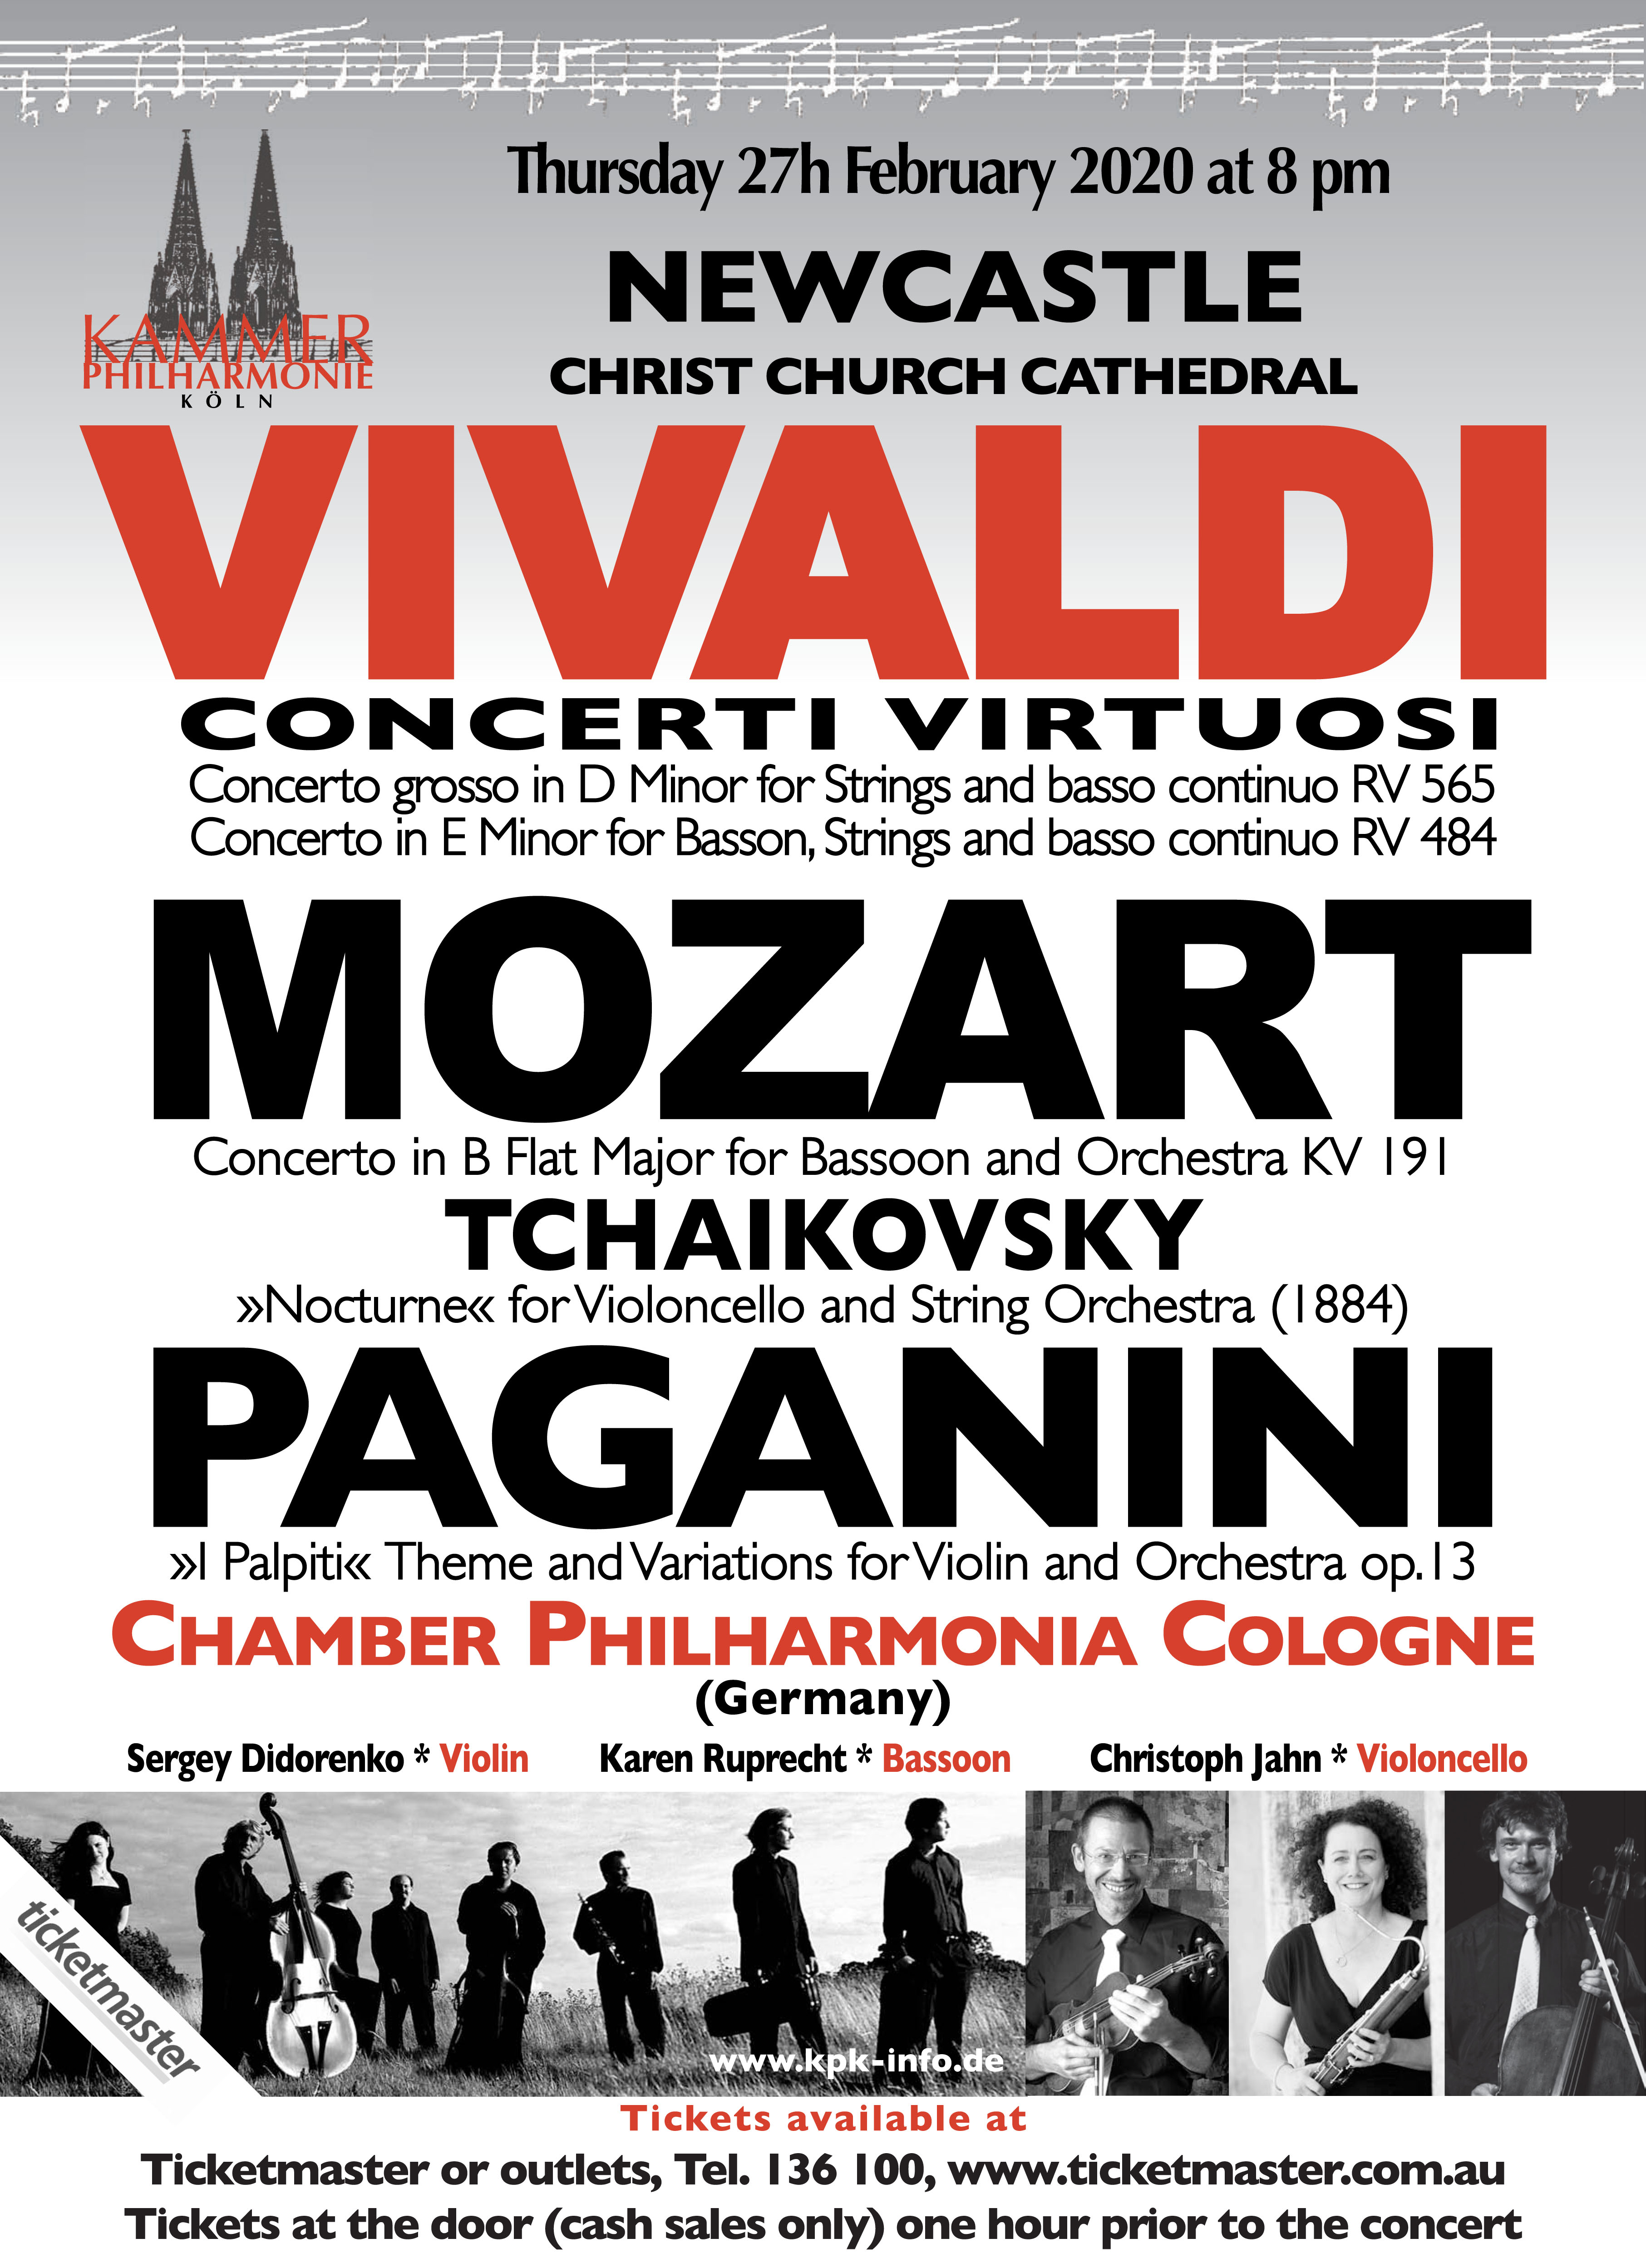 Download flier for Chamber Philharmonia Cologne Concert - 8pm 27th February 2020 Newcastle Cathedral- Tickets via Ticketmaster or at the door cash  only